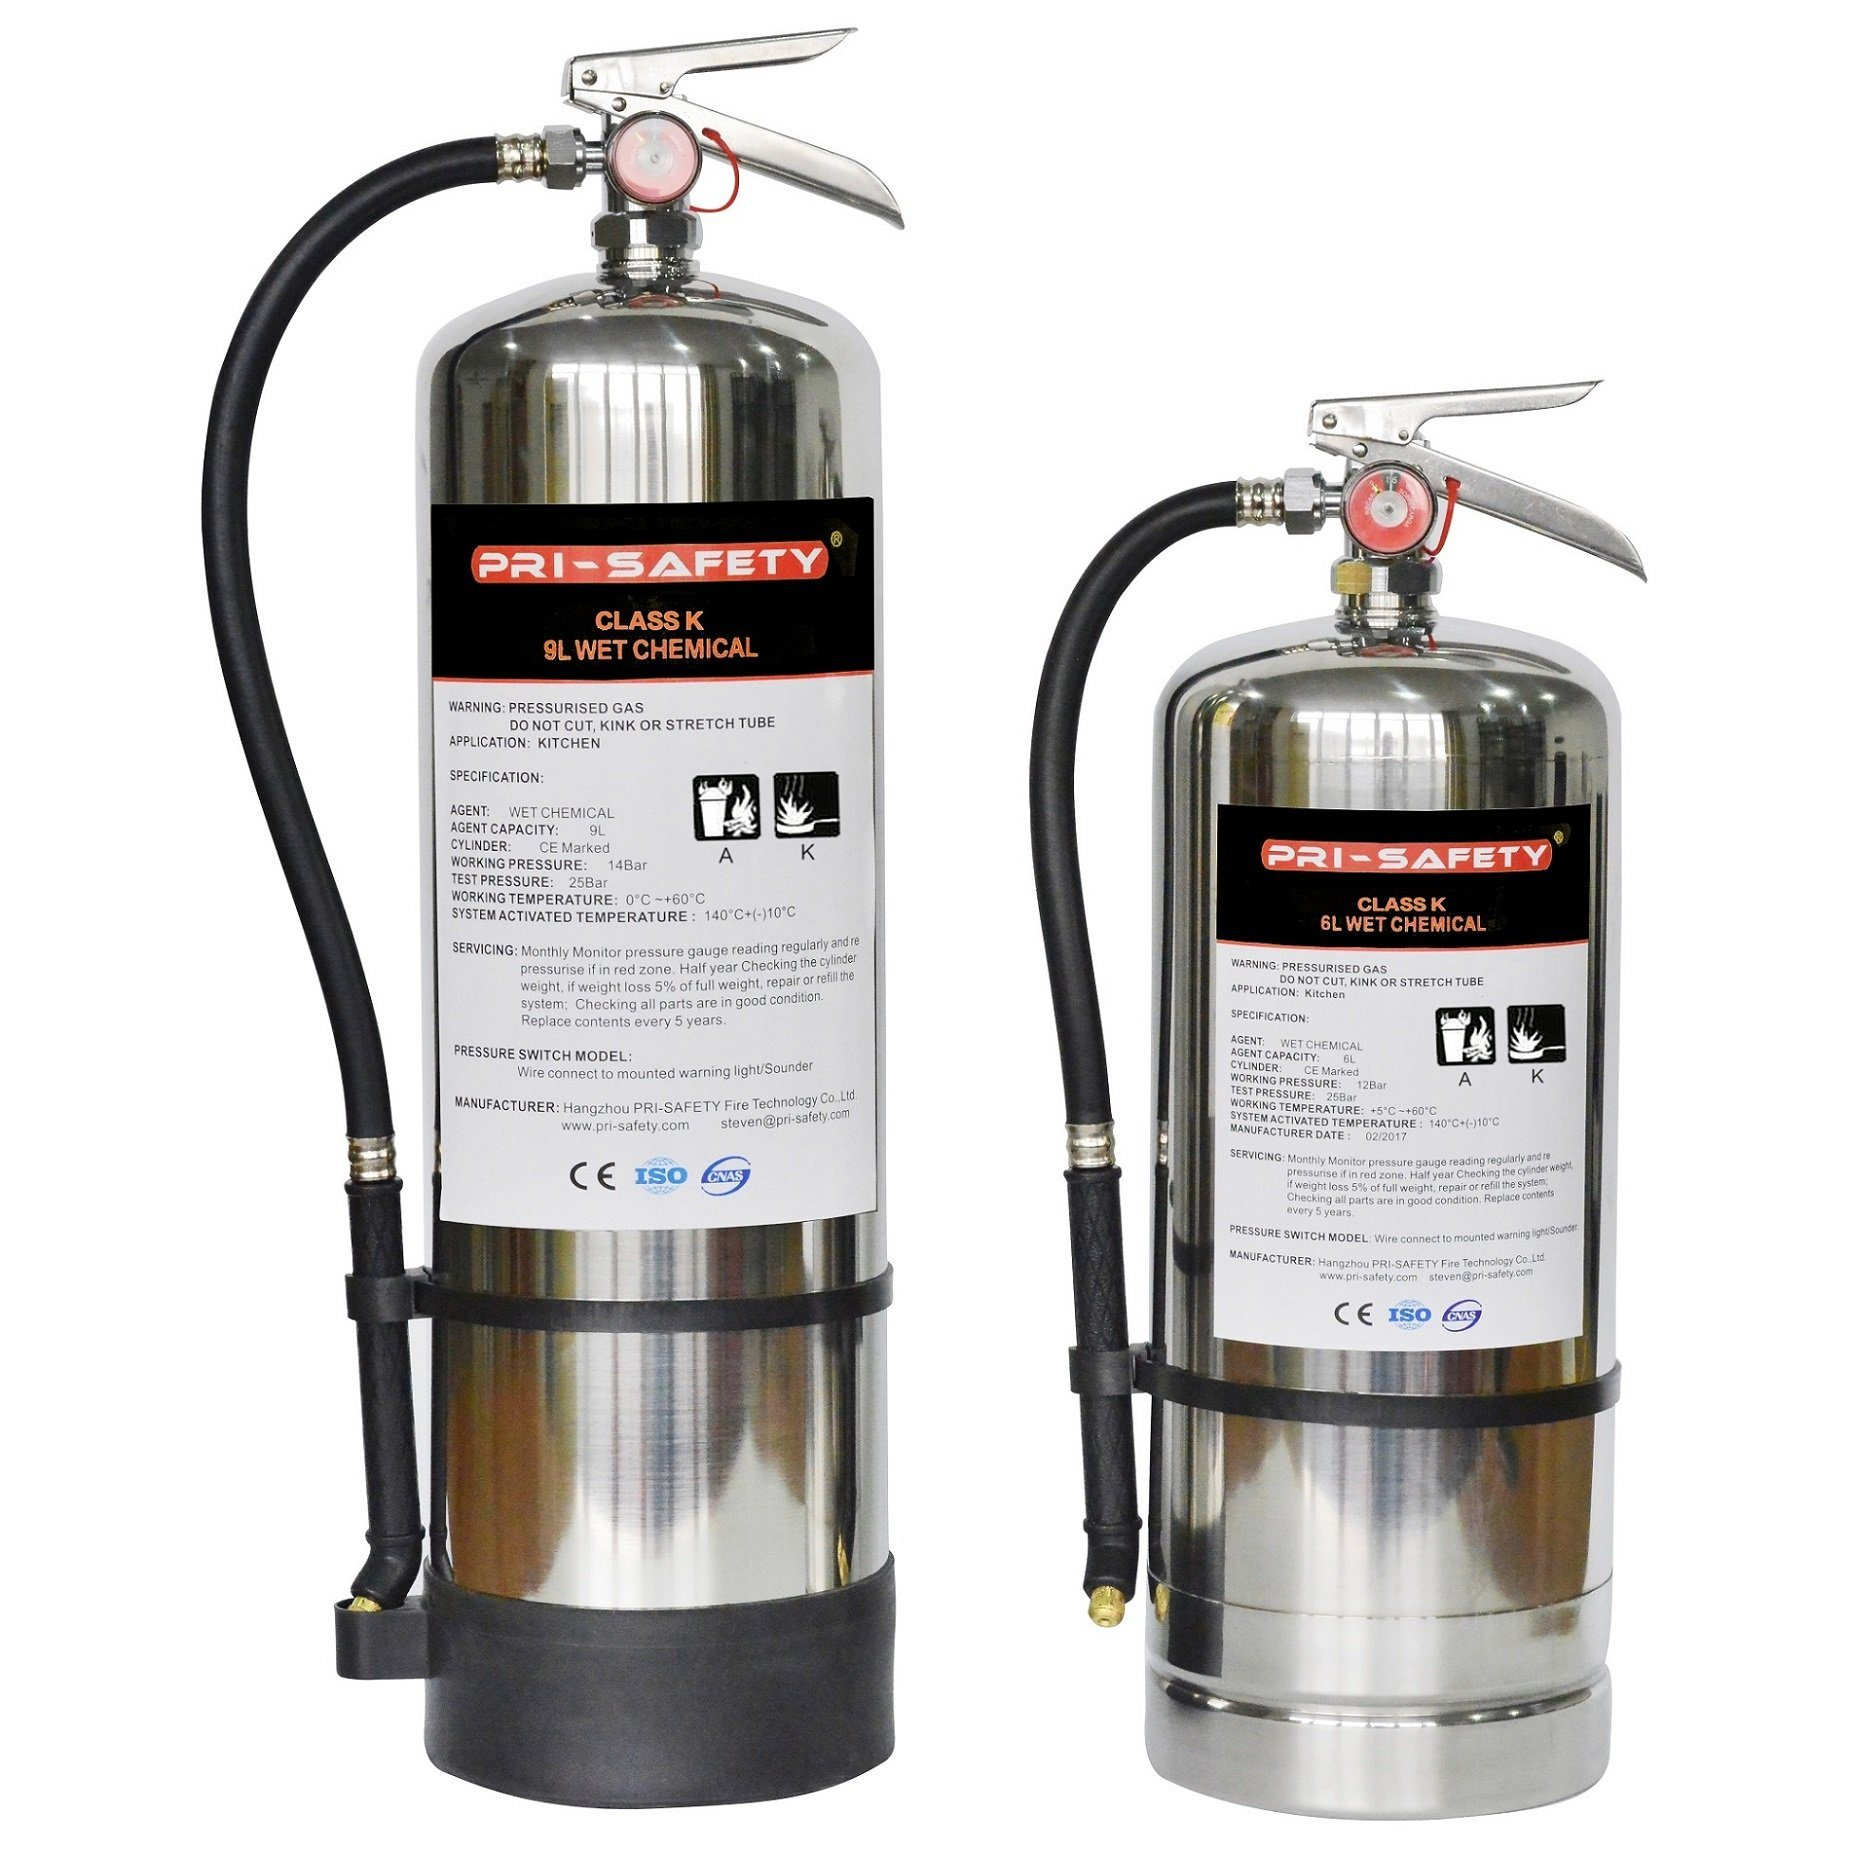 China American Wet Chemical Stored Pressure Class K Kitchen Fire Extinguishers China Wet Chemical Extinguisher Class K Extinguisher